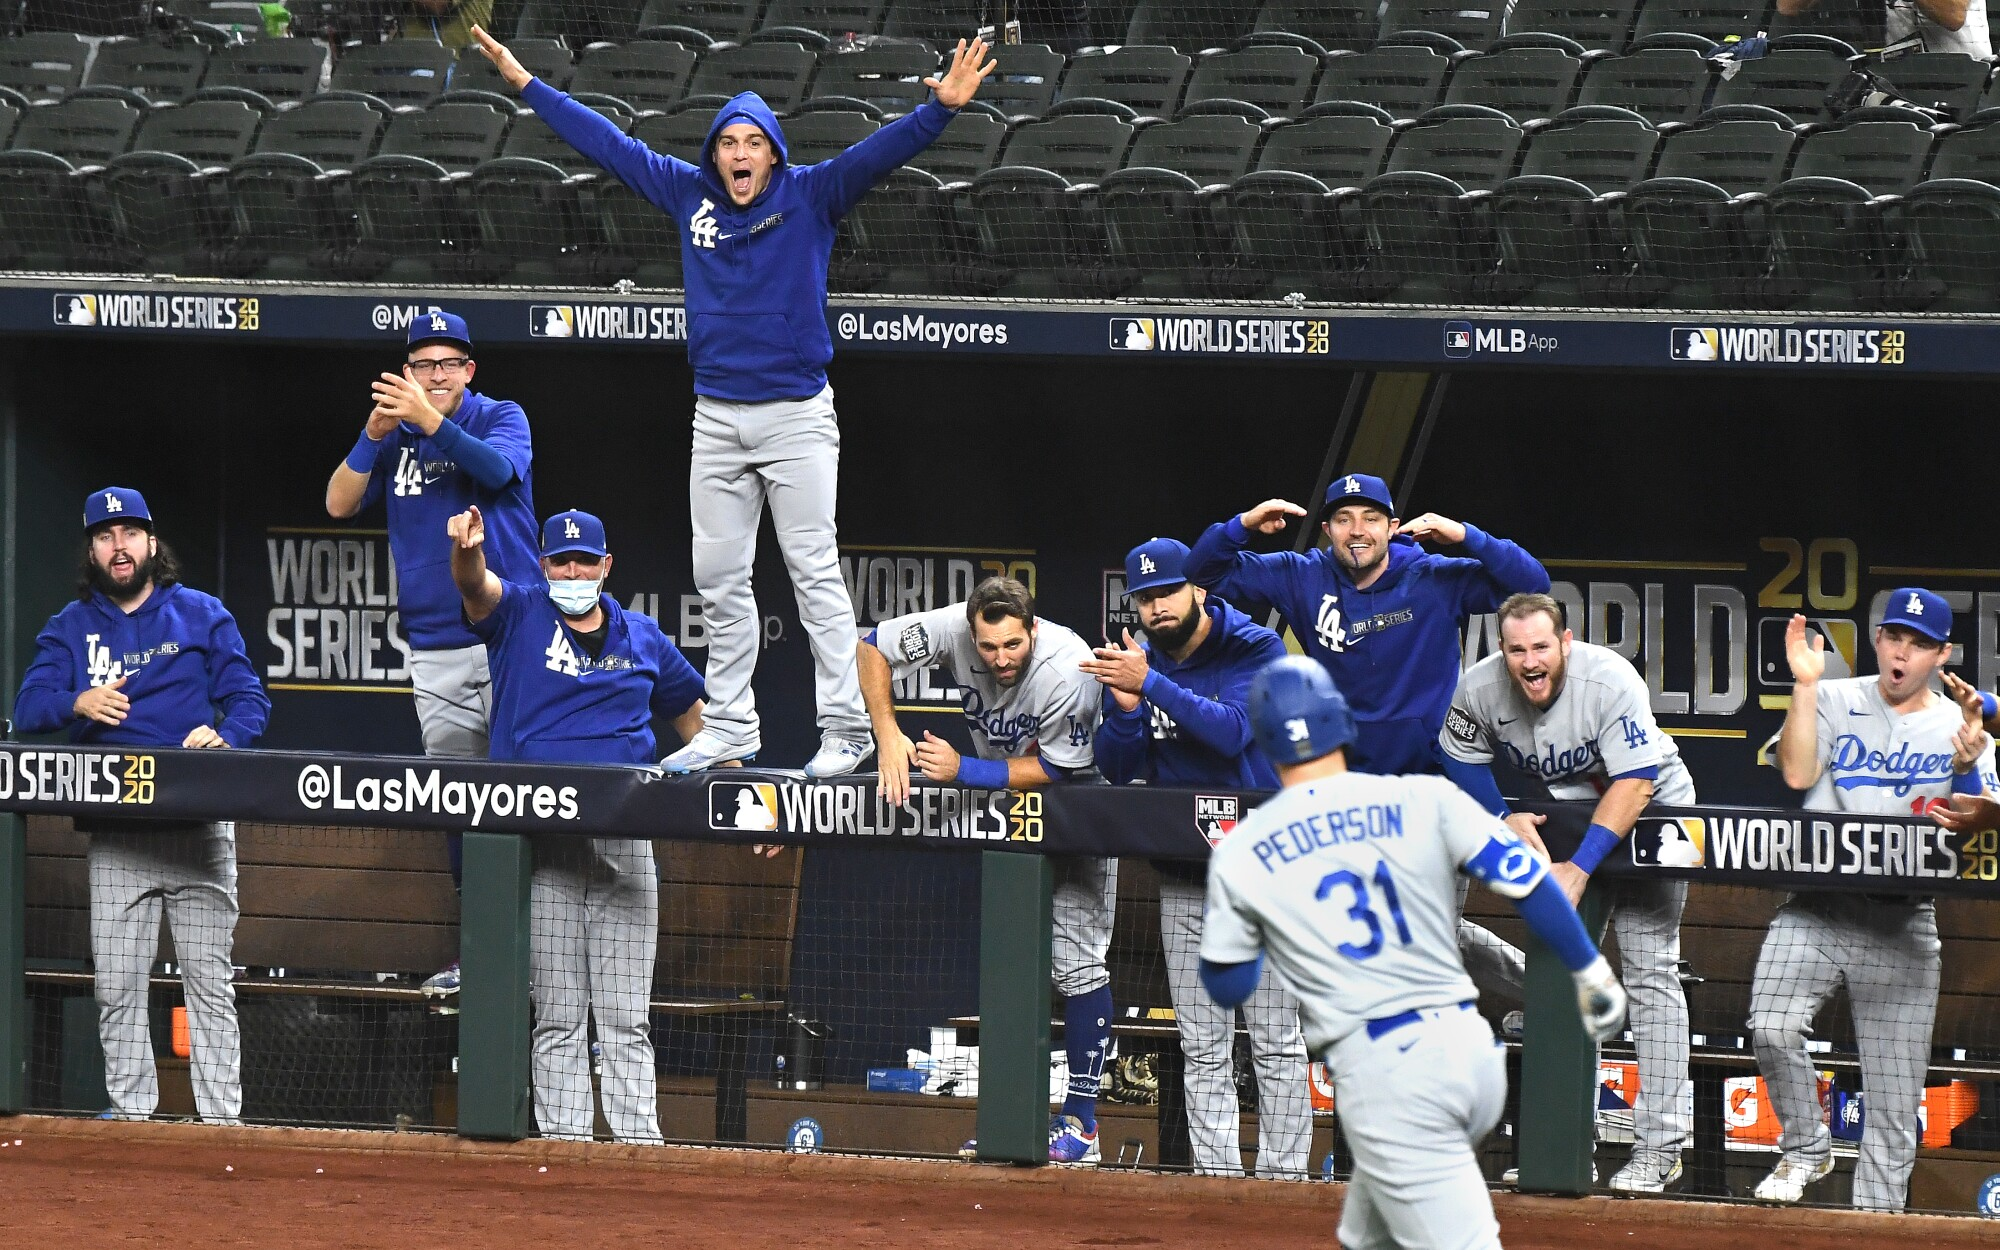 The Dodgers dugout erupts after a solo home run by Joc Pederson during the second inning in Game 5 of the World Series.